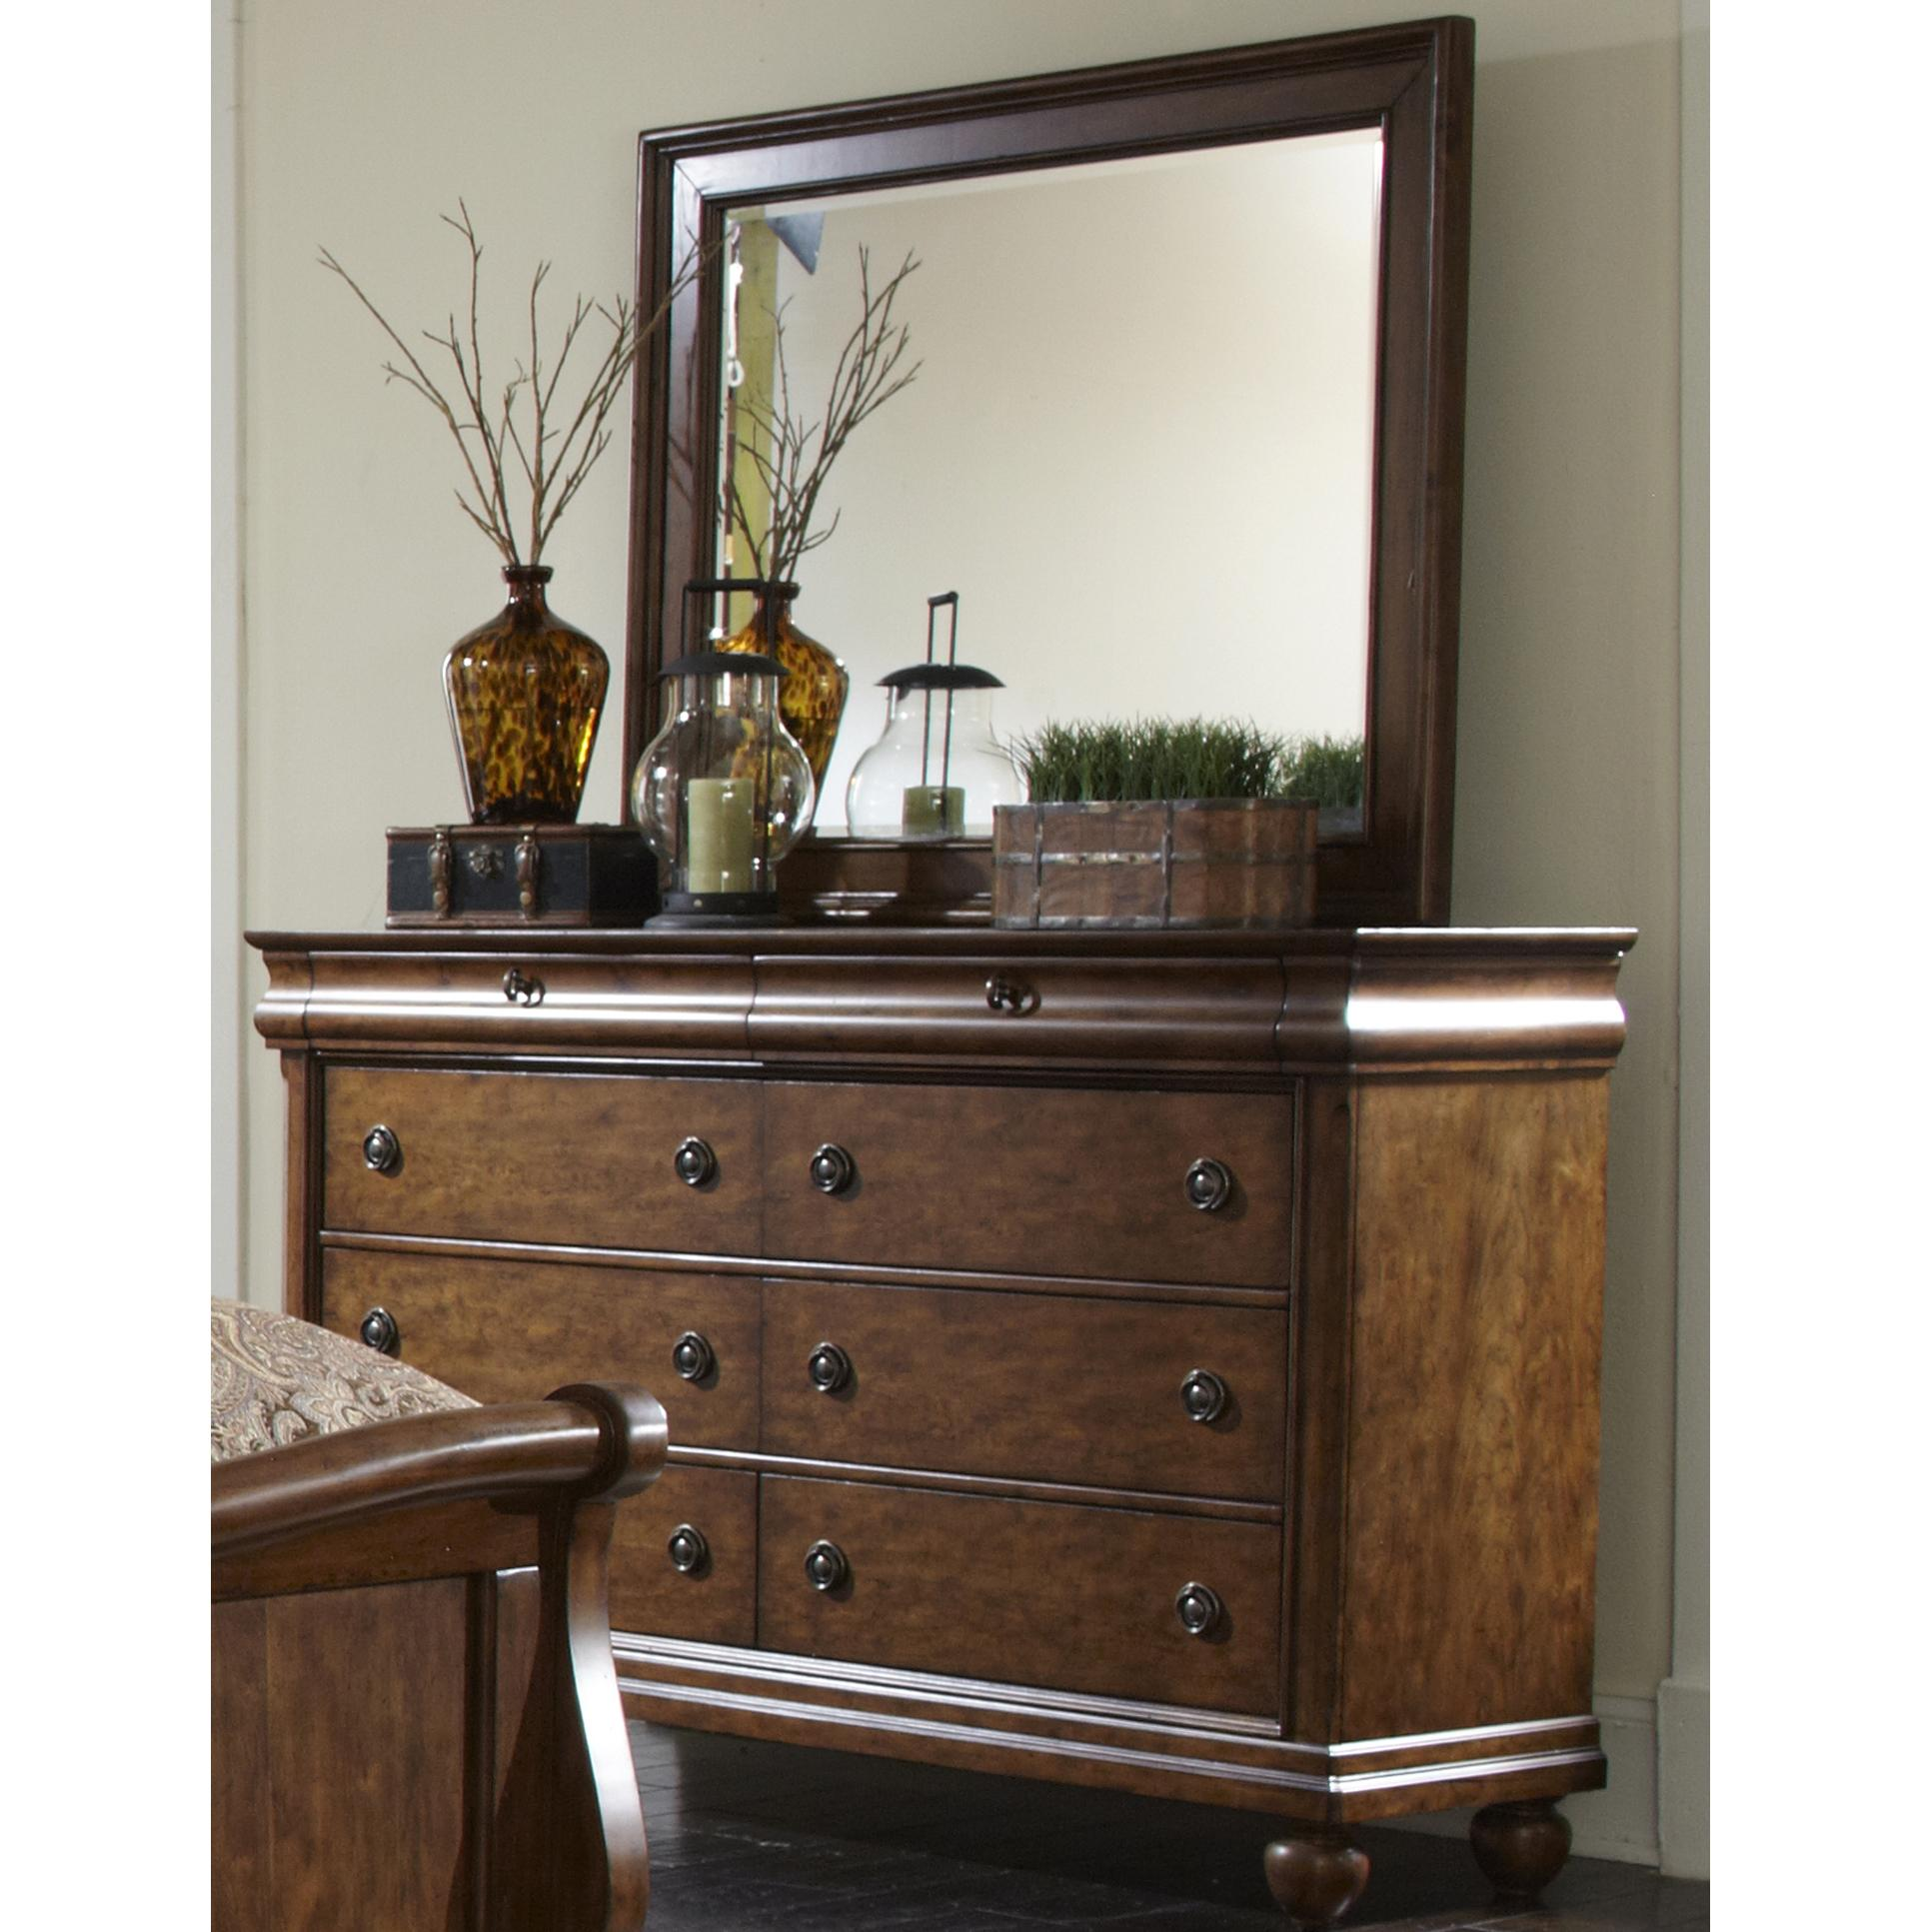 Rustic Traditions Dresser and Mirror by Libby at Walker's Furniture